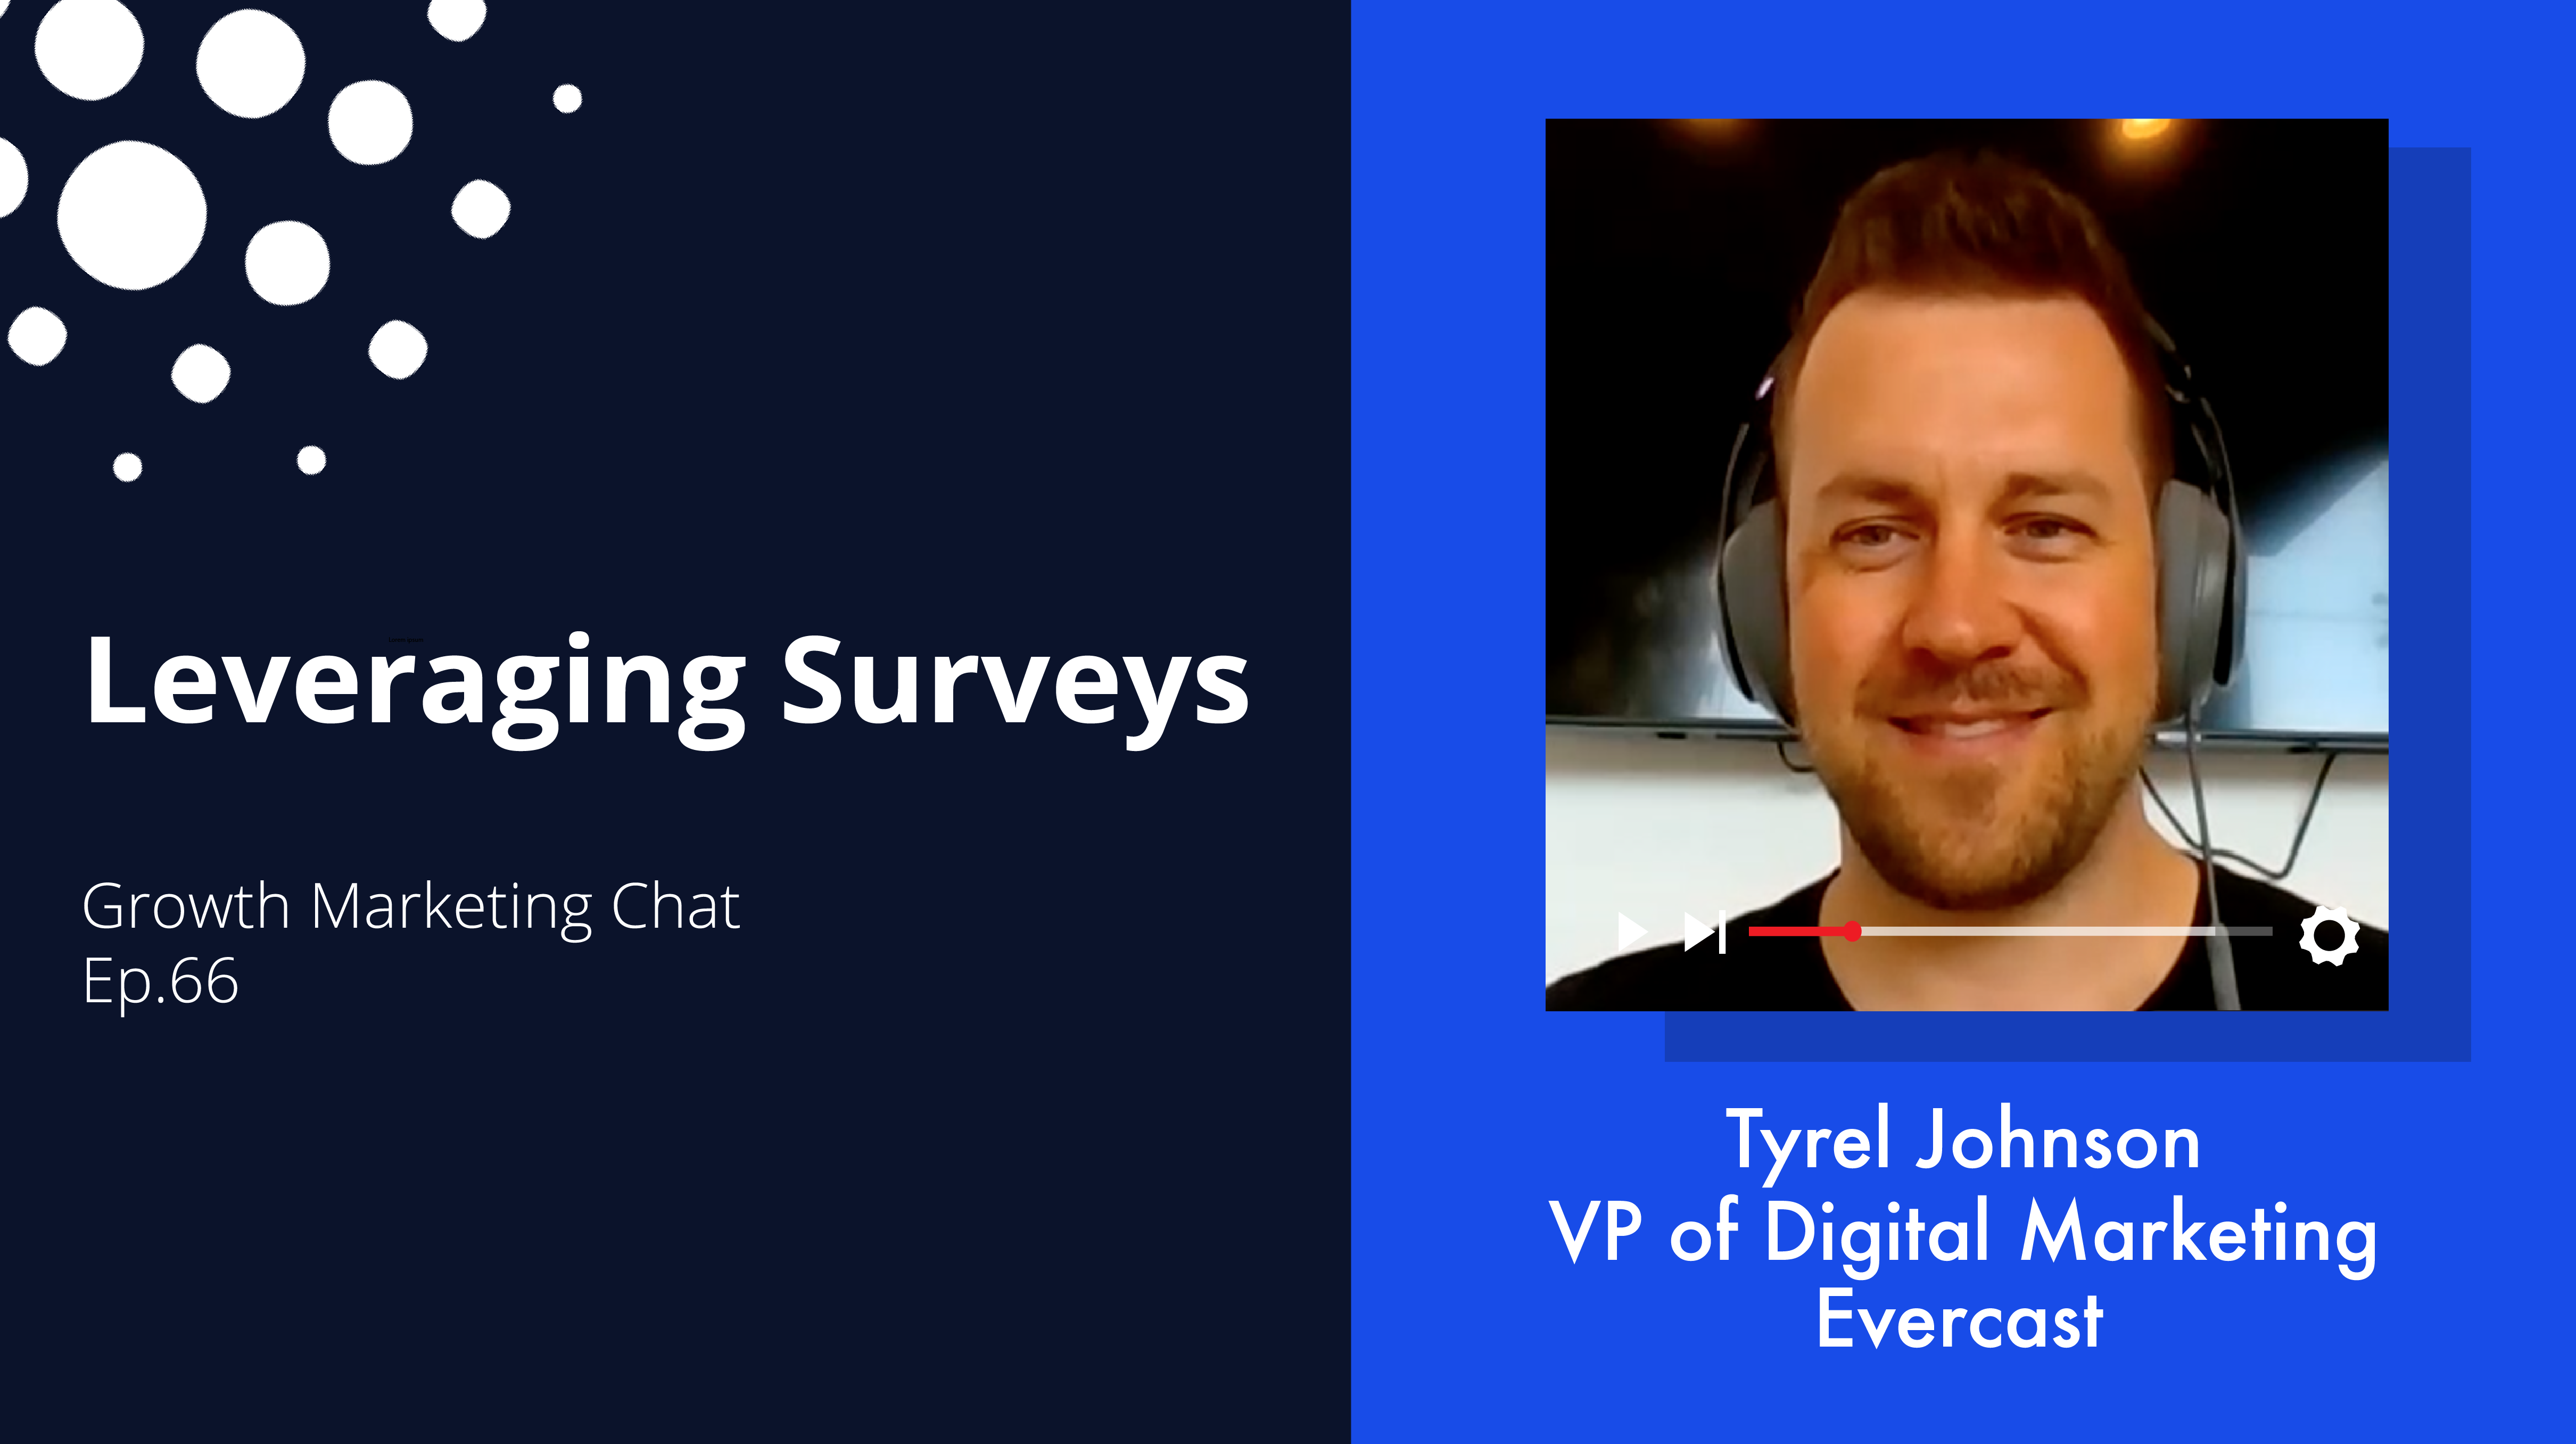 Leveraging Surveys to Inform Your Growth Marketing Strategy